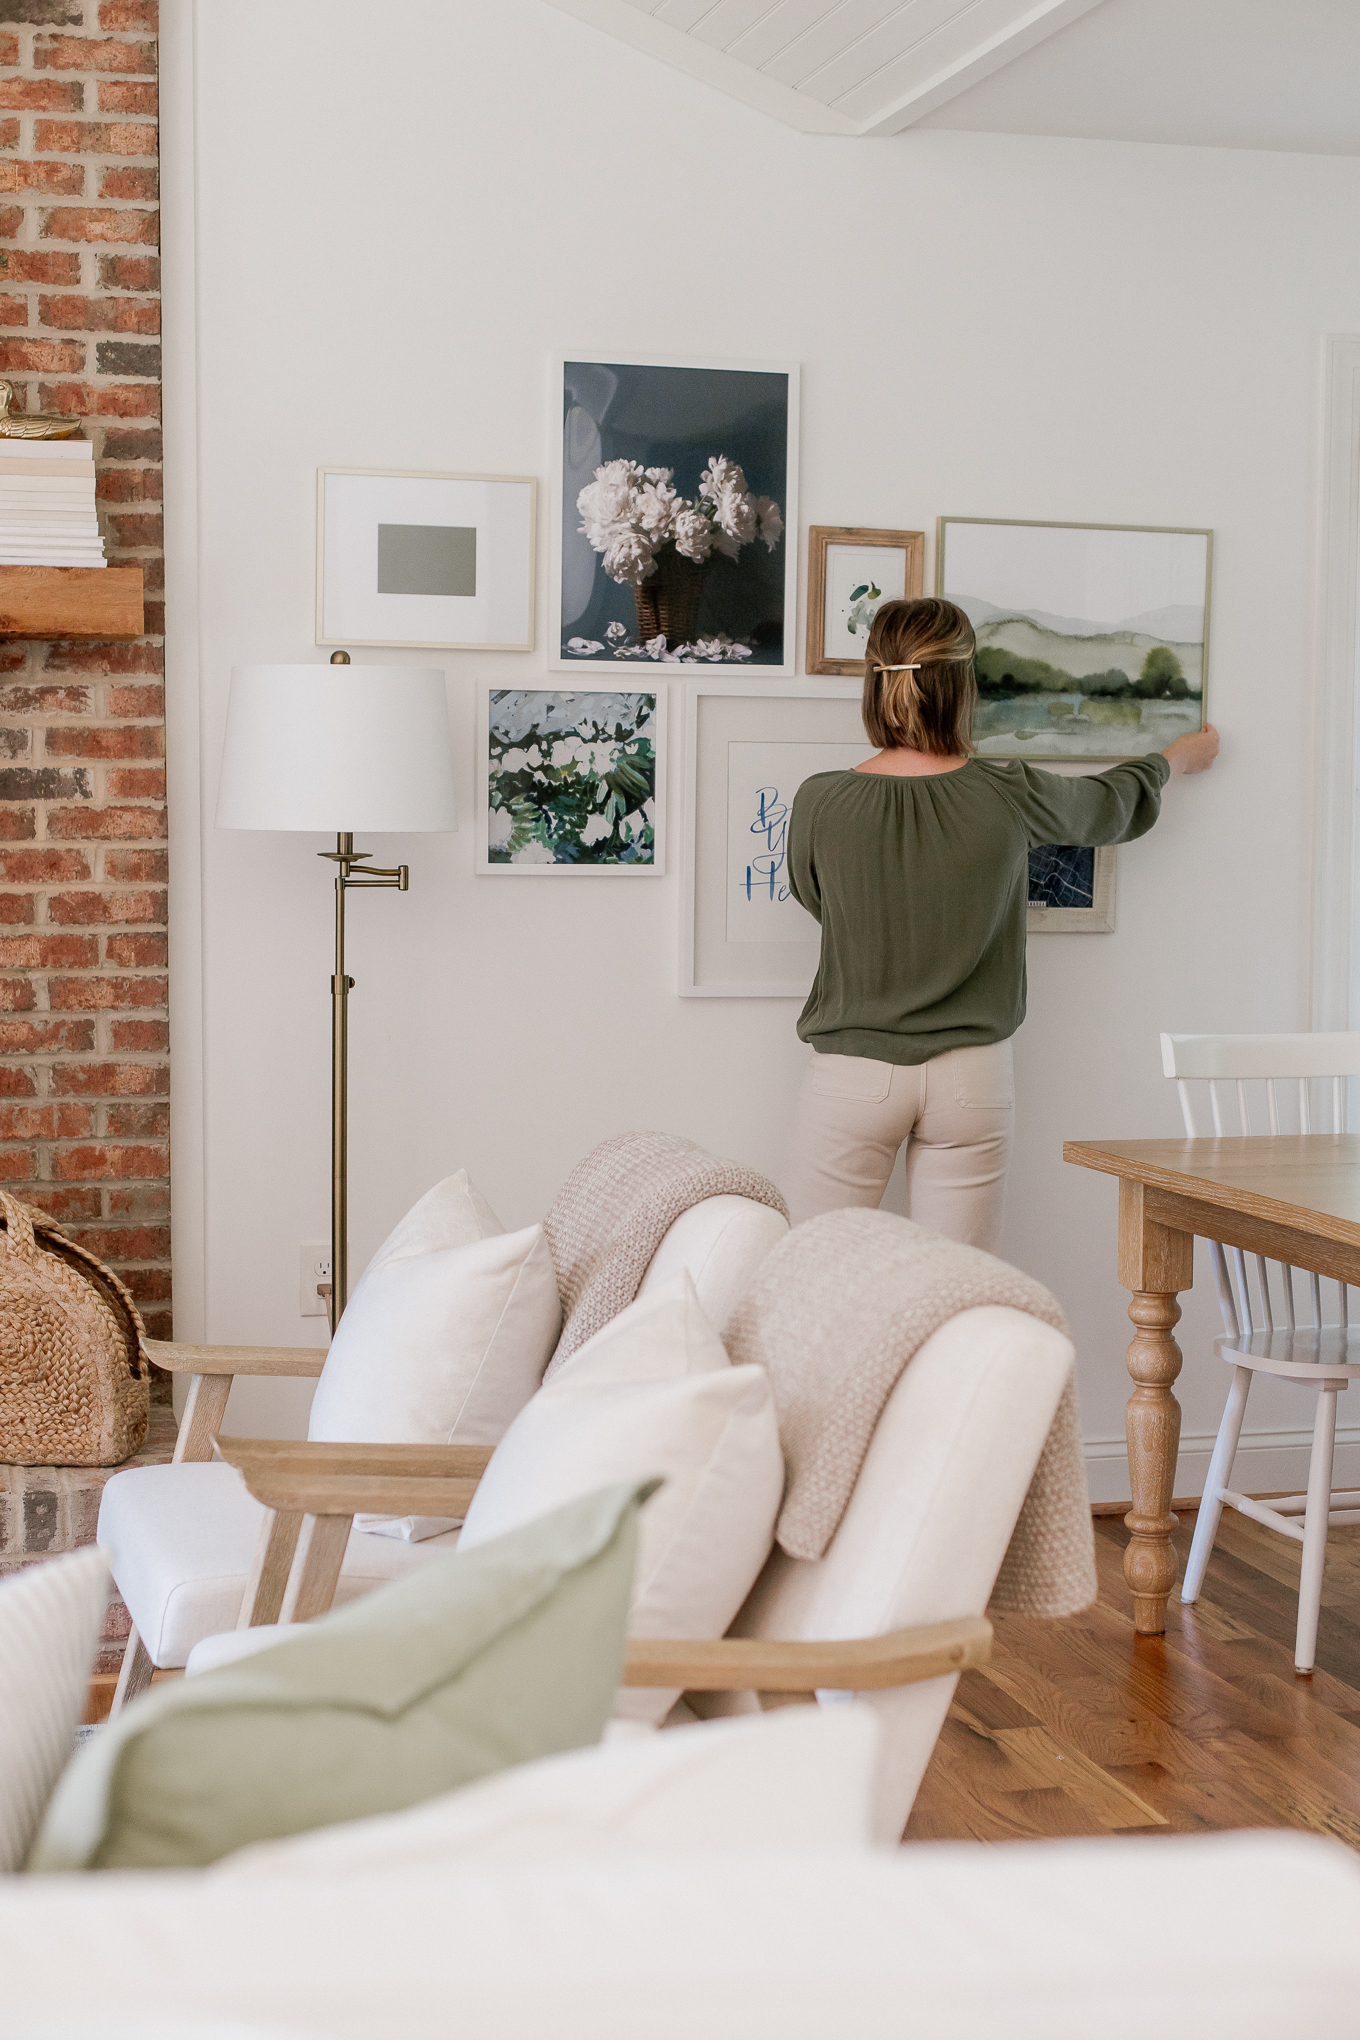 How to Create the Ultimate Gallery Wall & Compliment it with Decor | Louella Reese